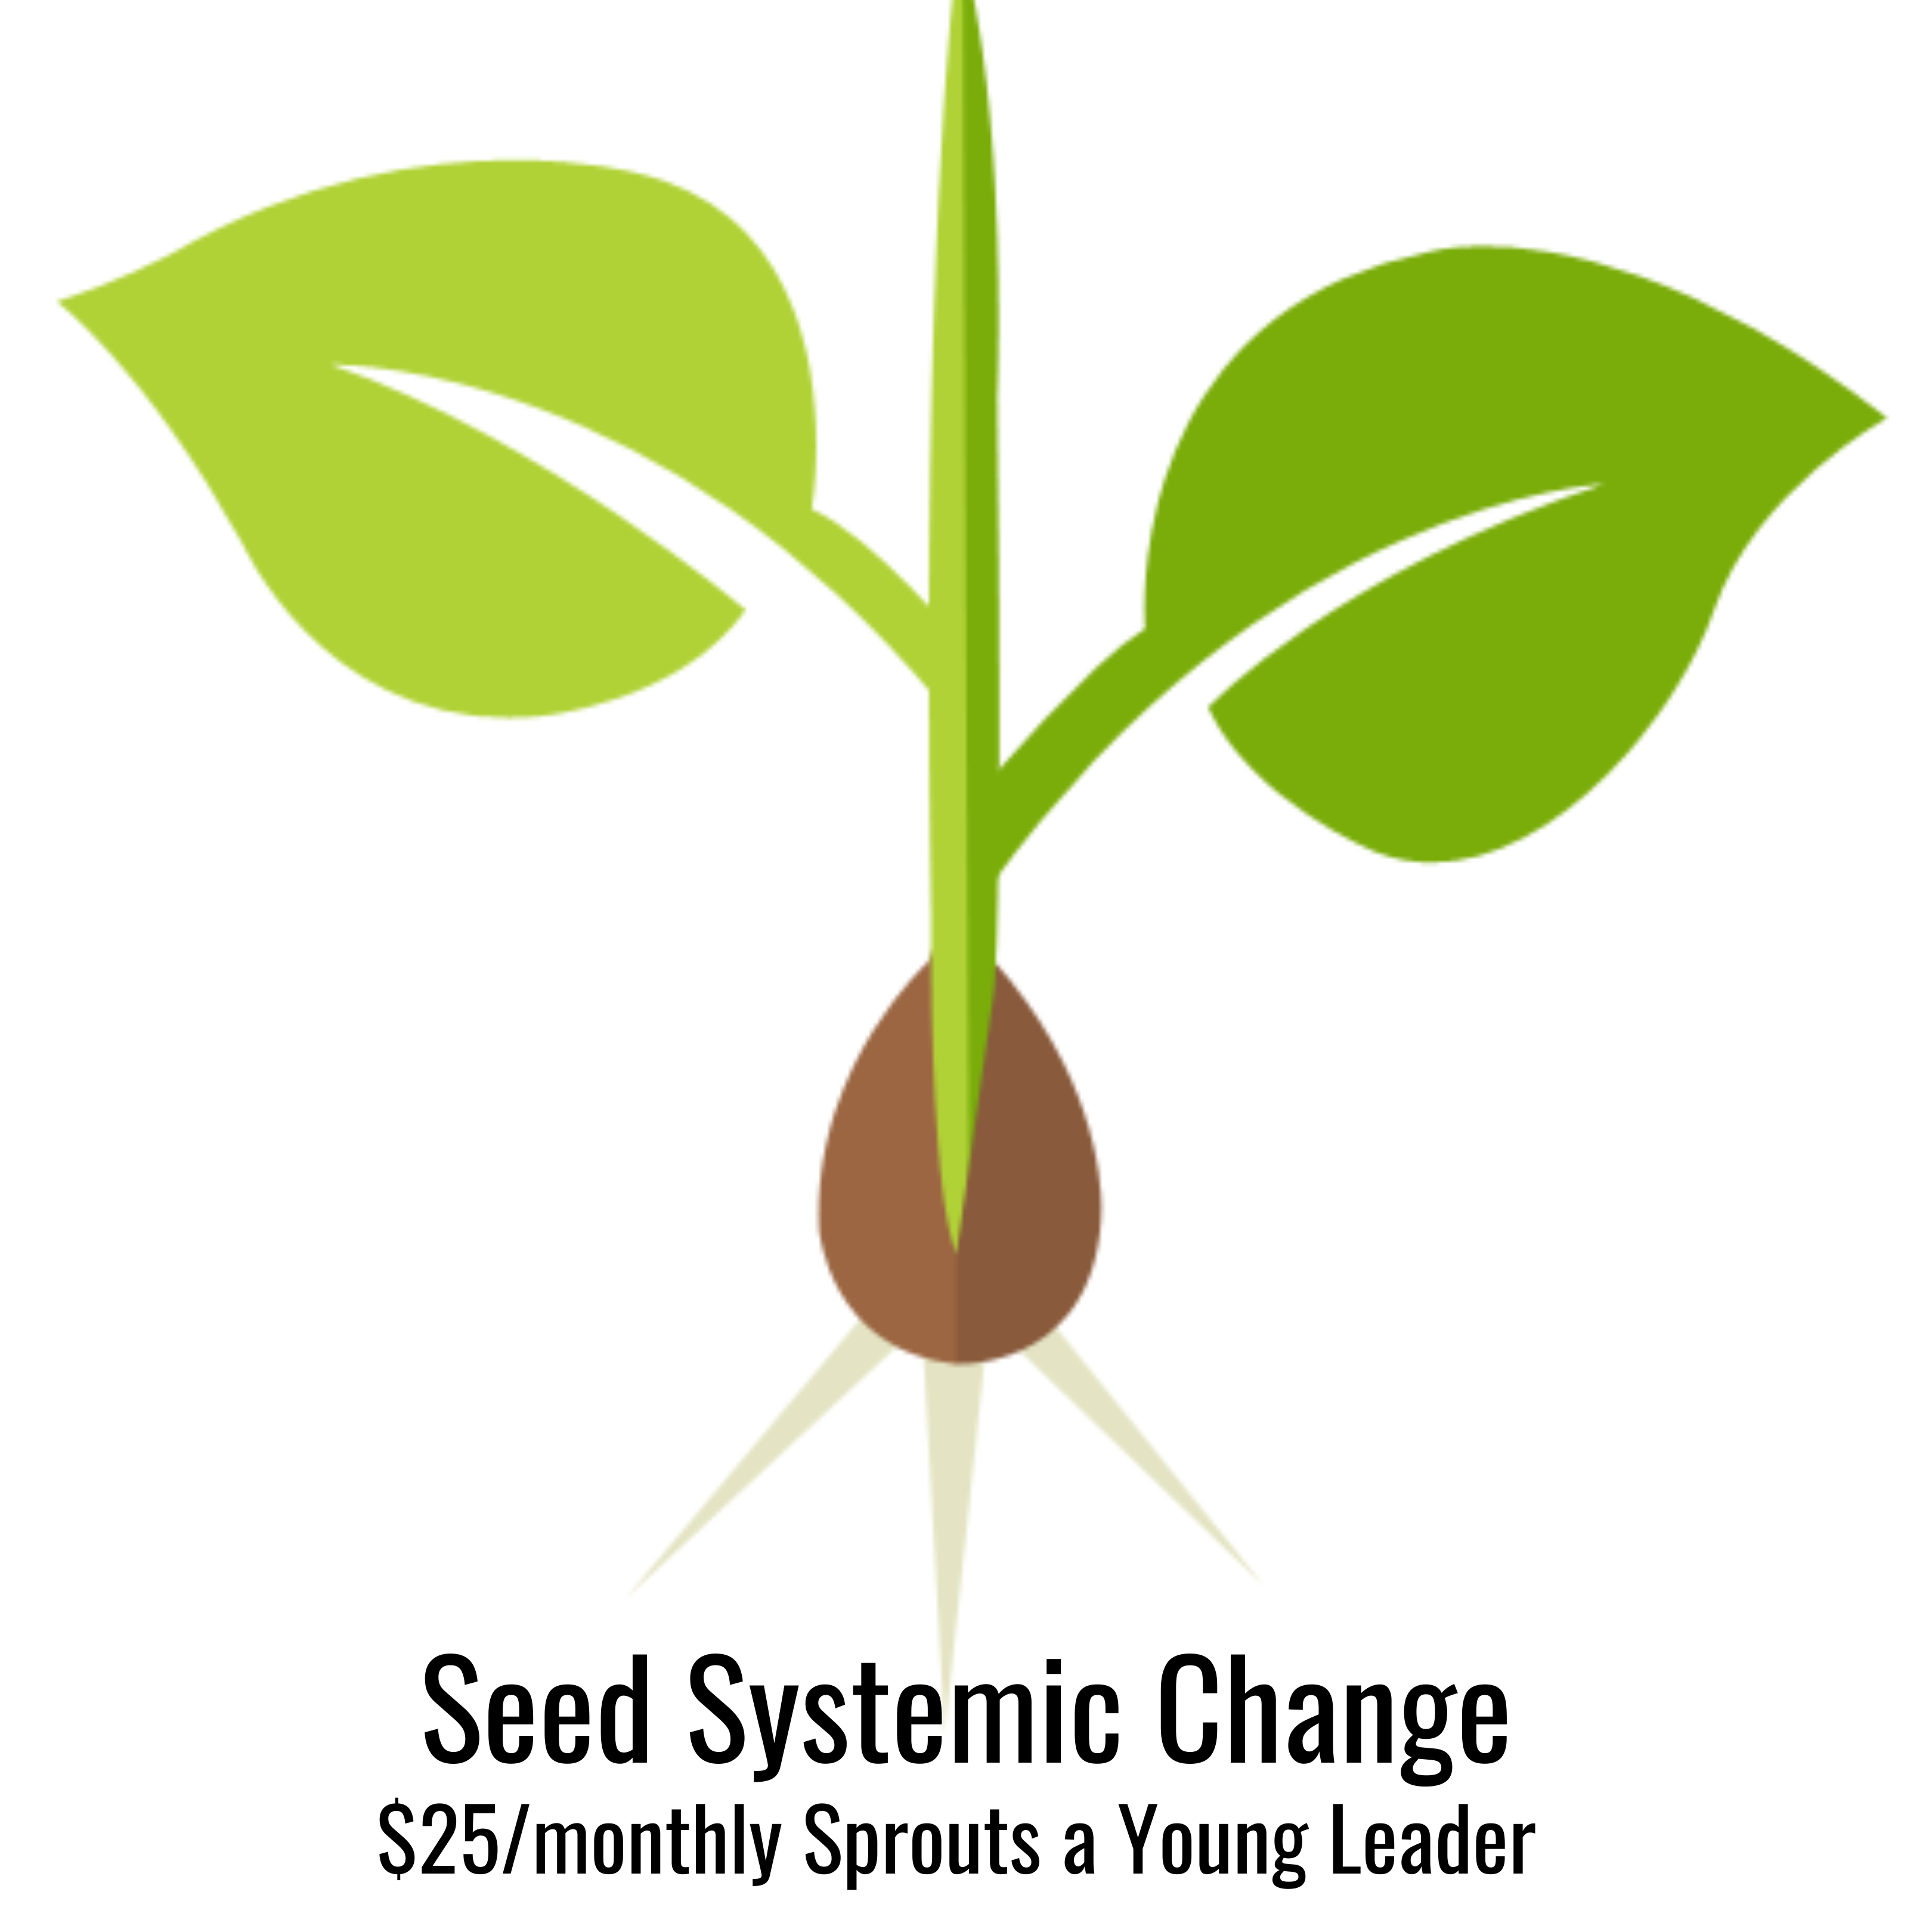 Seed Systemic Change